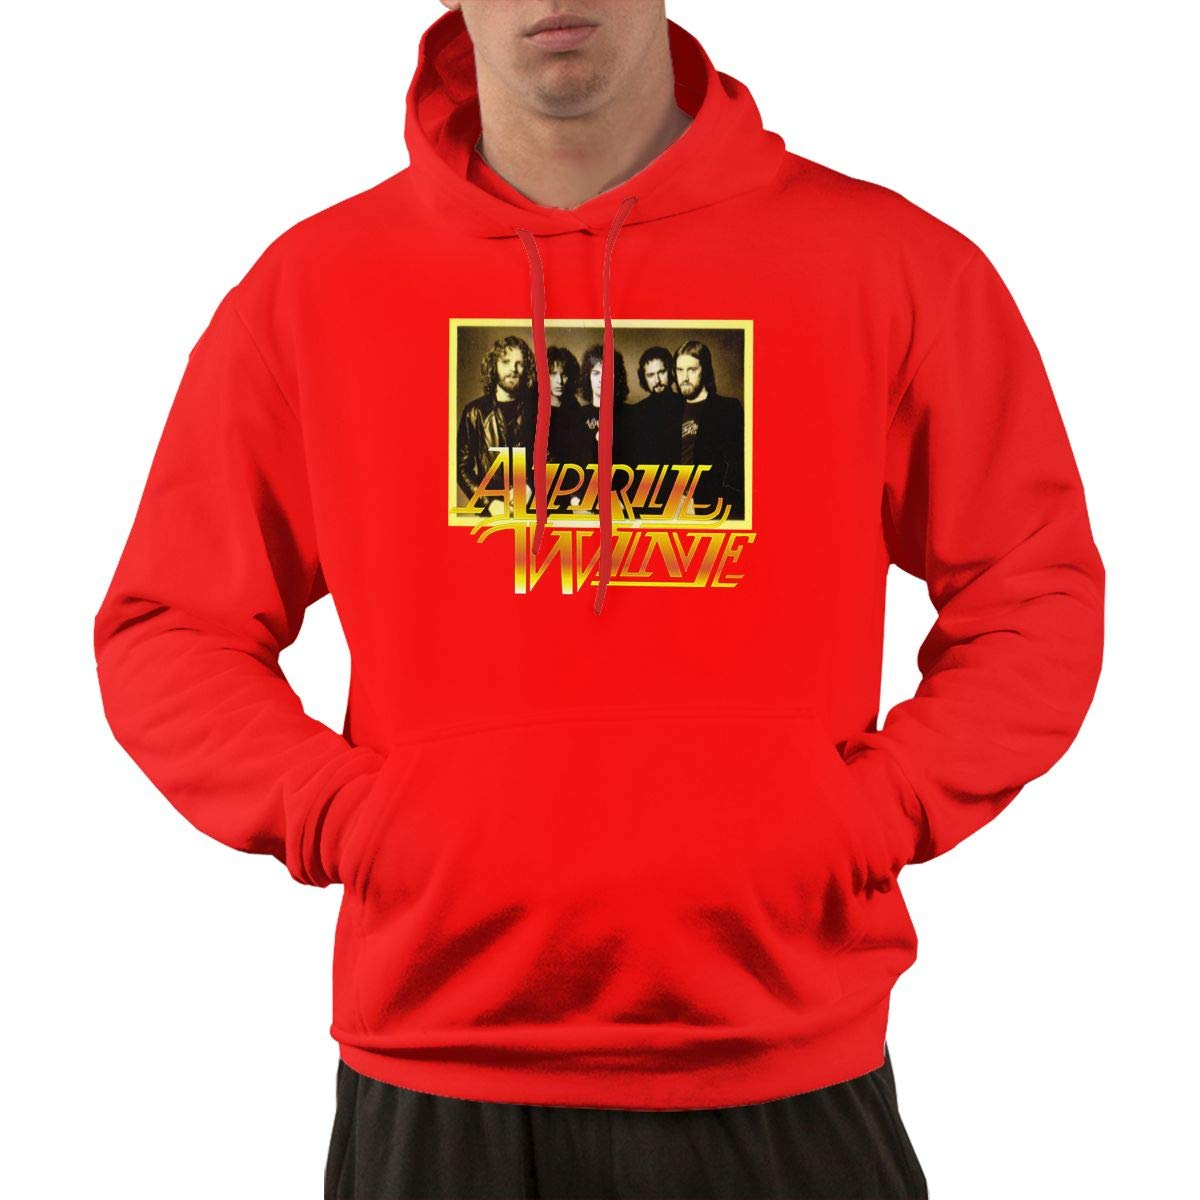 Pullover Casual Red Print April Wine 1 Hooded Shirts With Pocket L